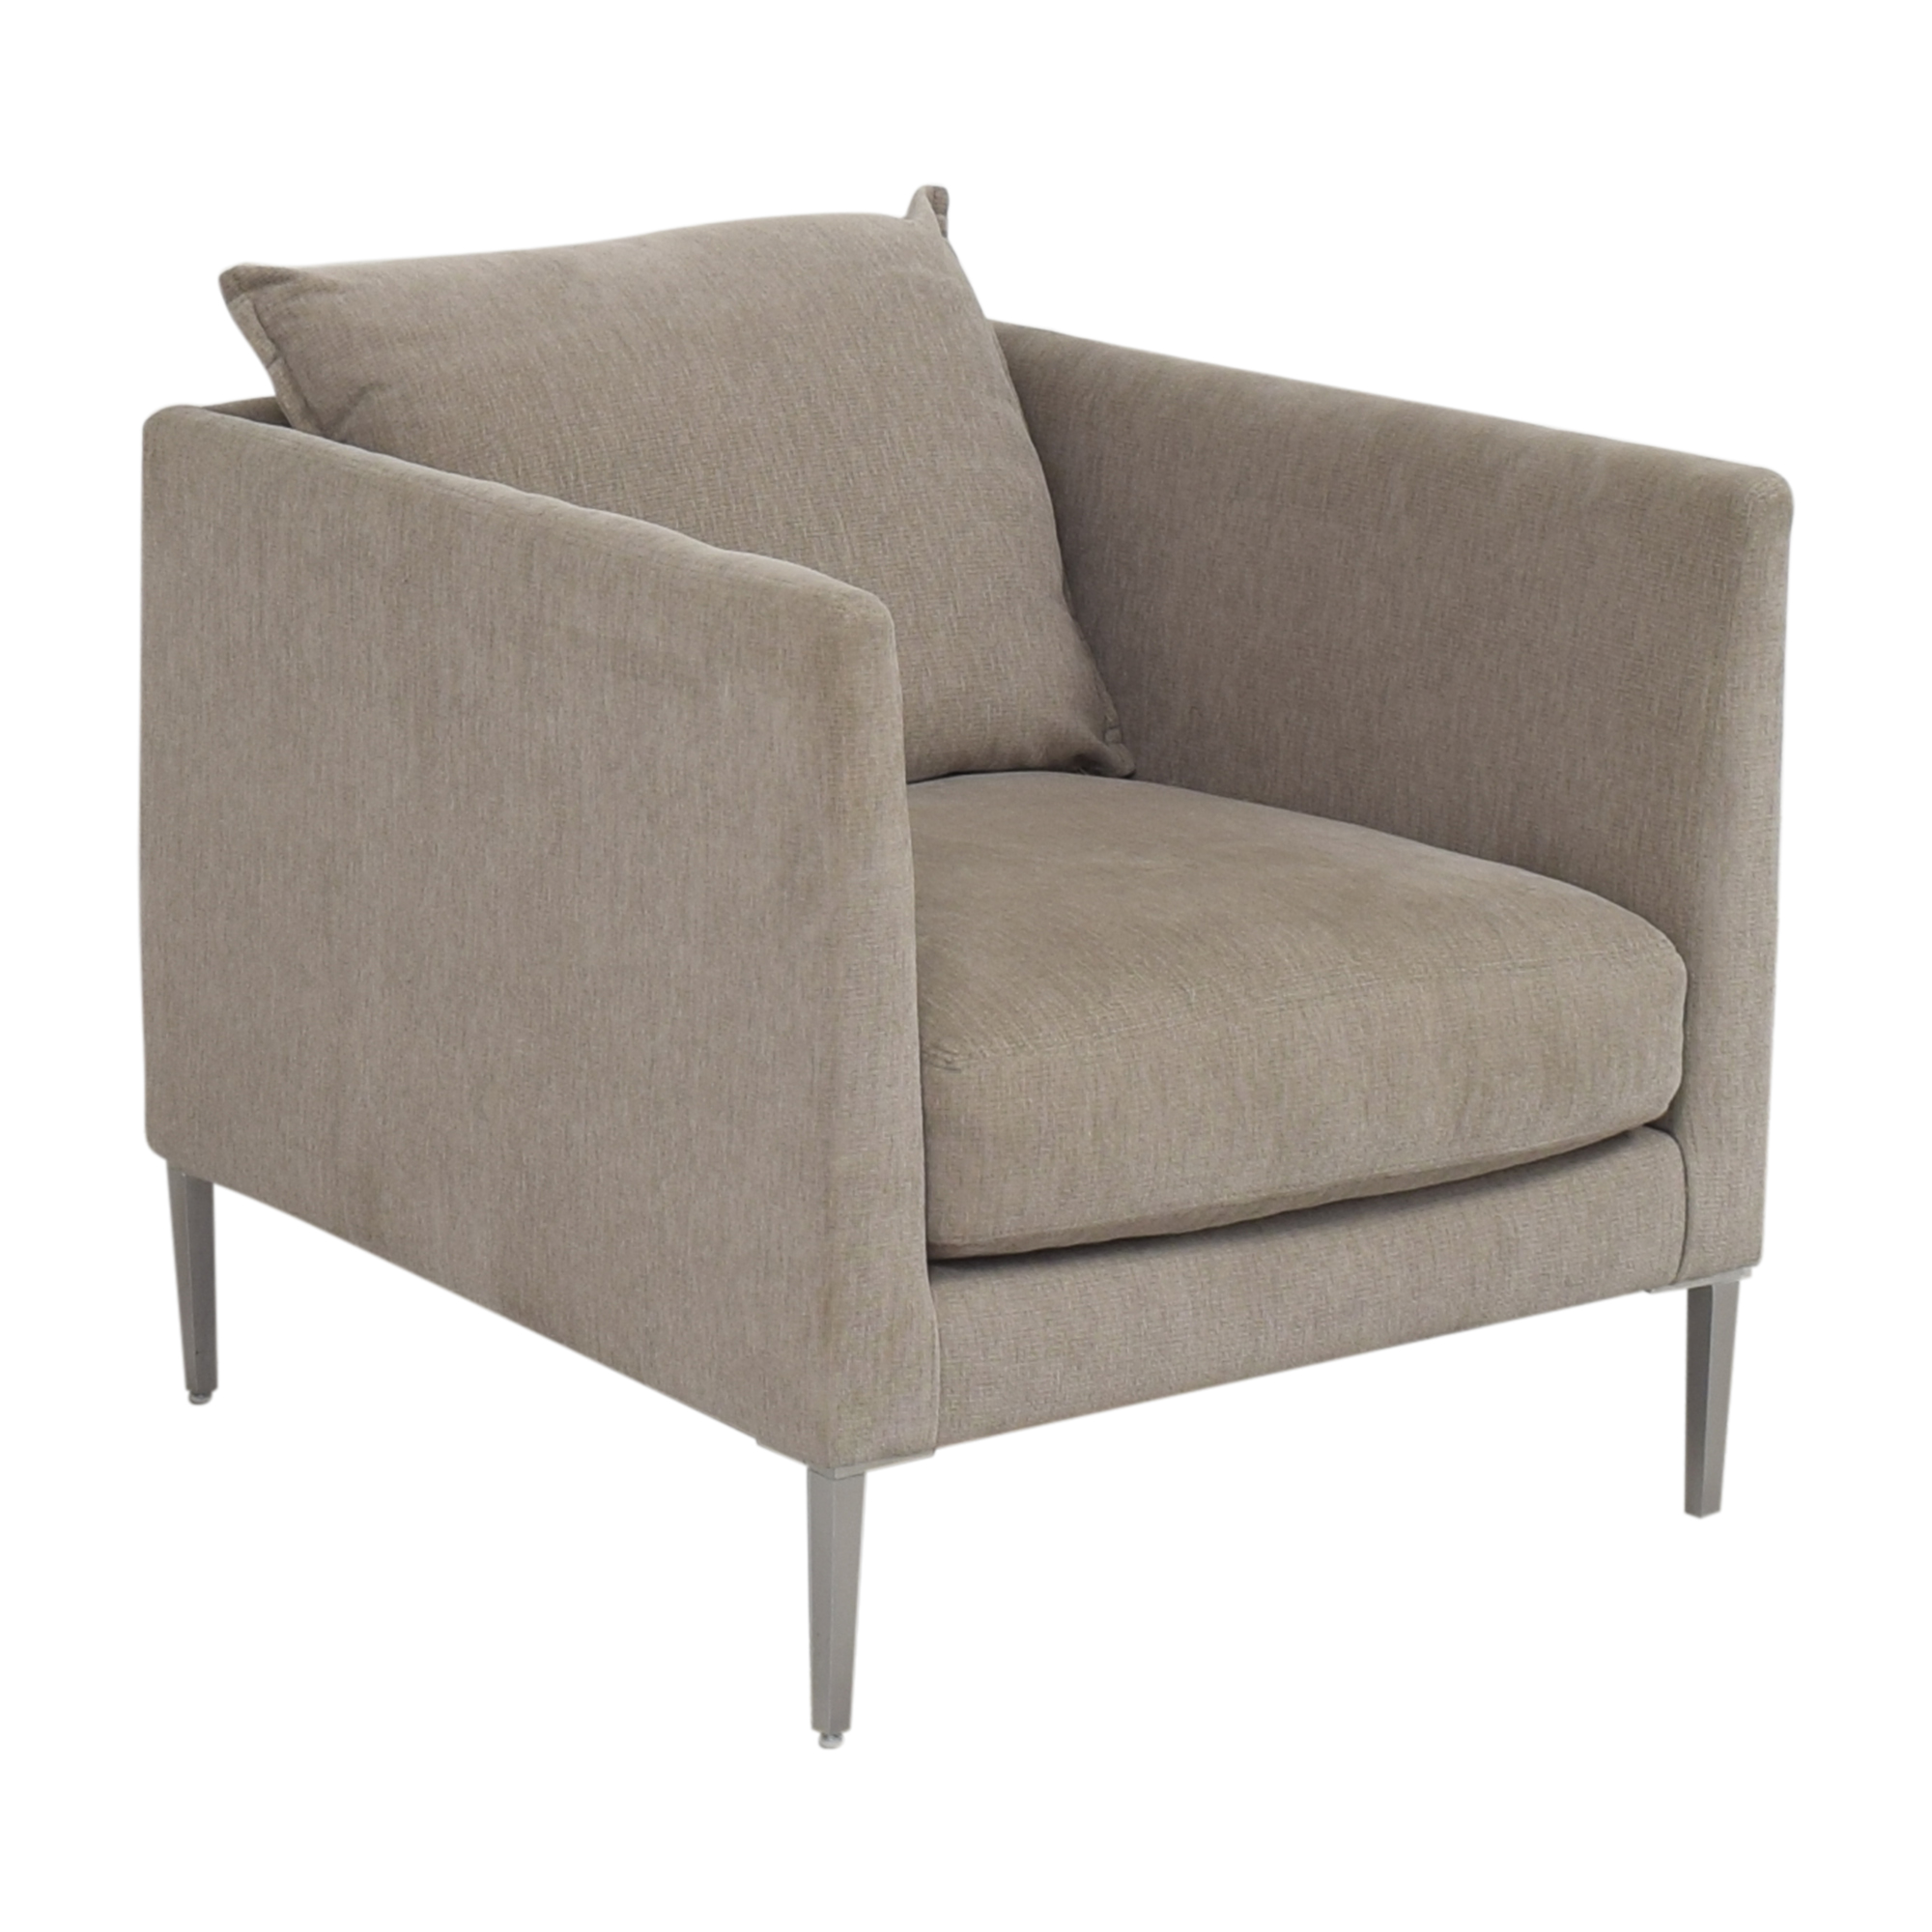 Room & Board Vela Chair / Accent Chairs